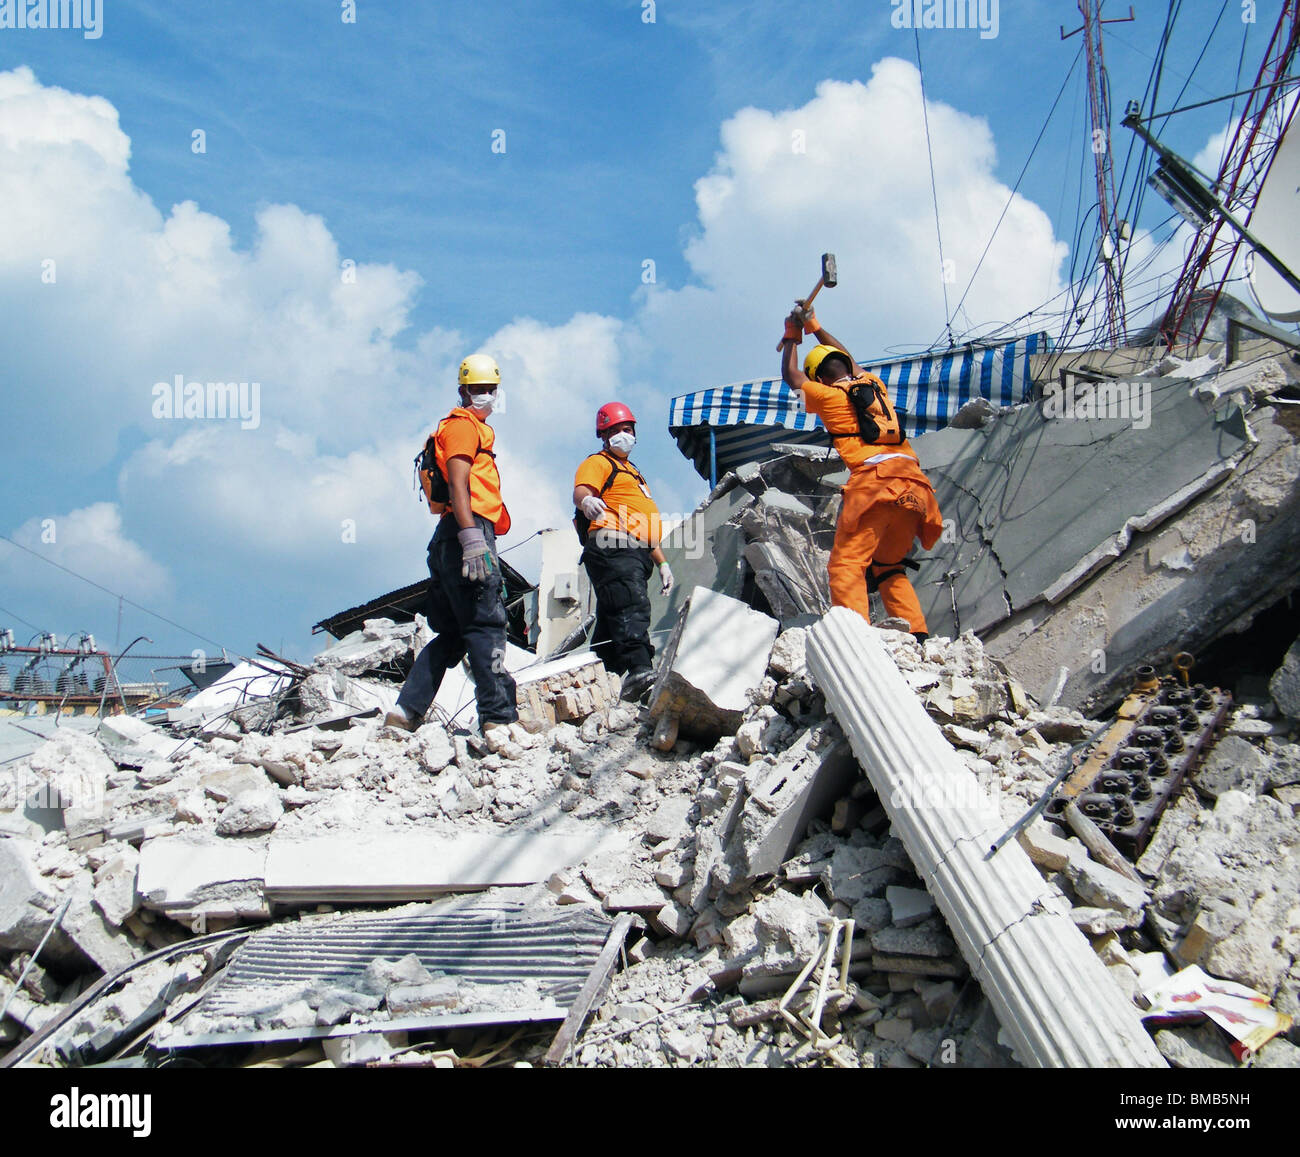 Dominican rescuers from the Defensa Civil search for survivors under the rubble in Port au Prince after the Haiti - Stock Image